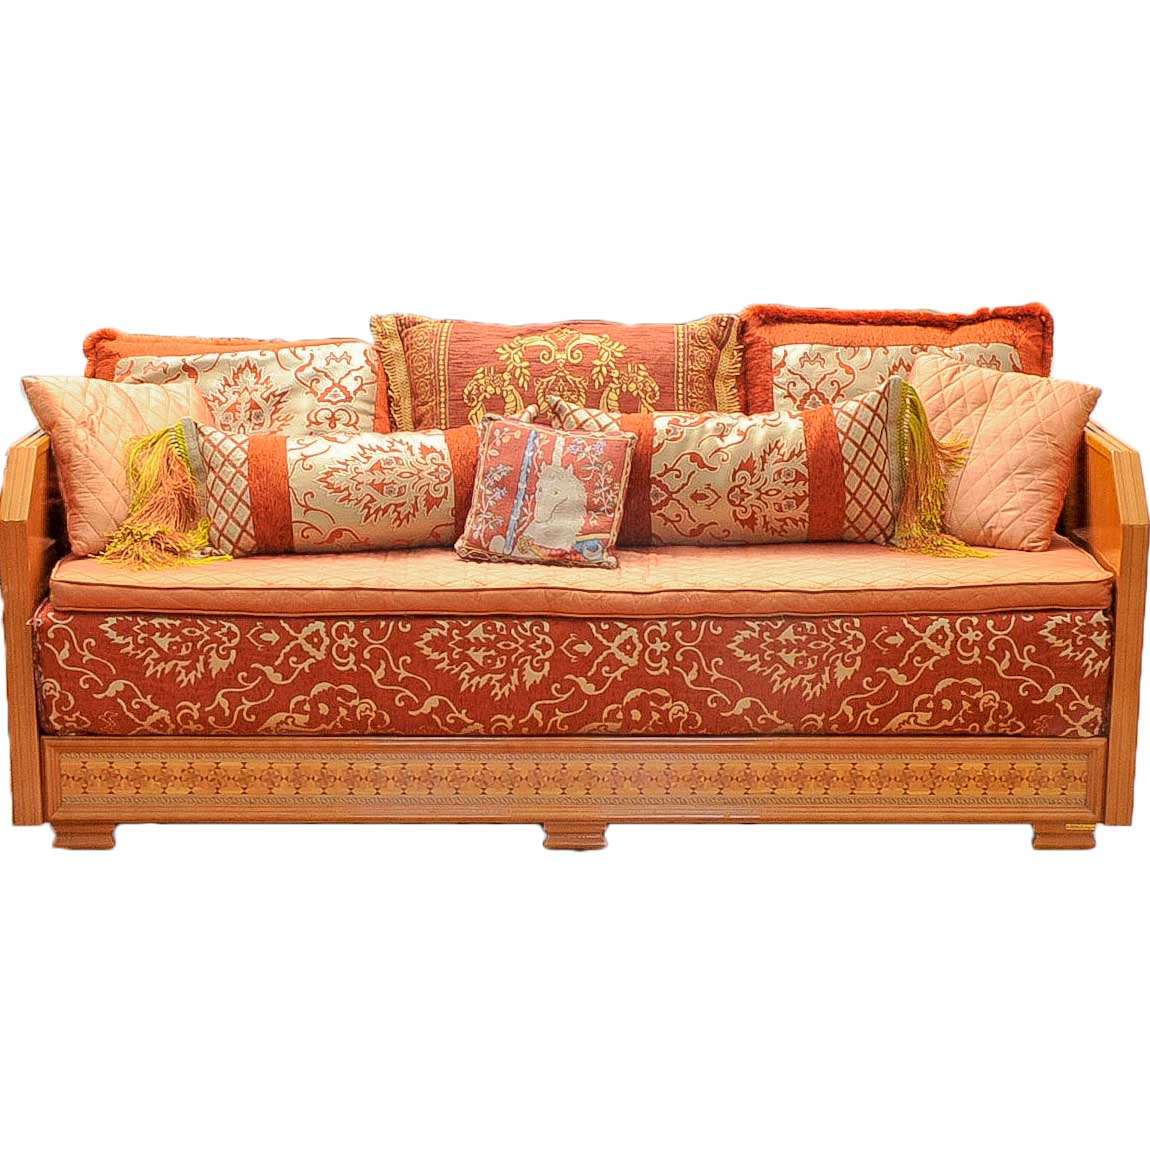 taylor king sofas old sofa recycle moroccan by richbond : ebth